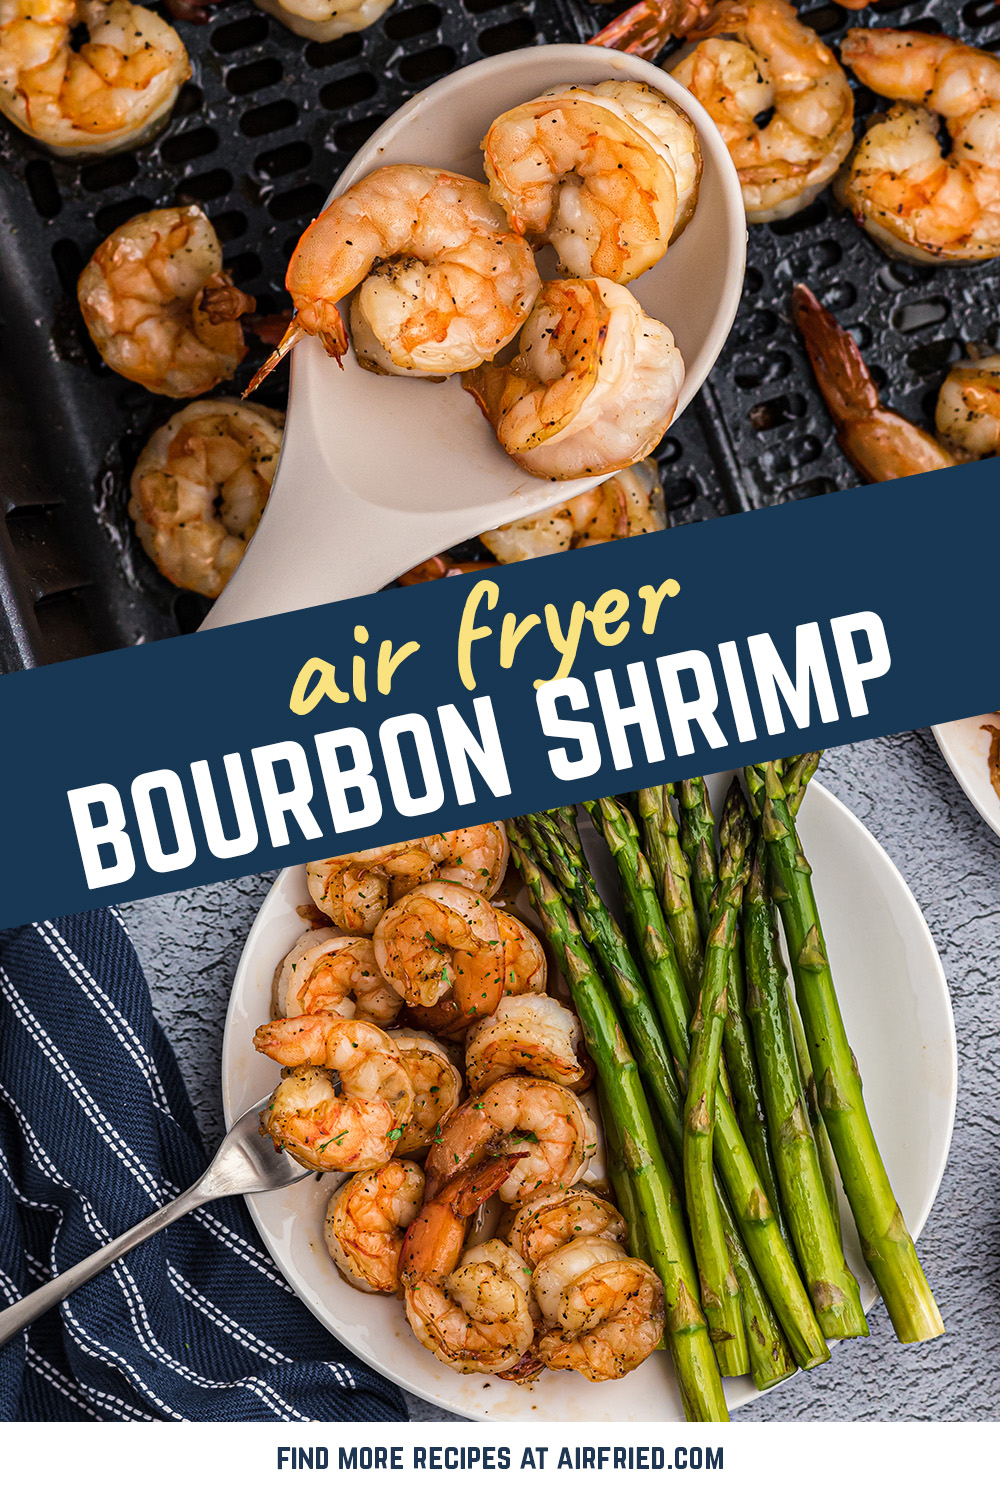 This shrimp recipe is elegant, delectable, and very easy to make in the air fryer! #airfried #recipes #seafood